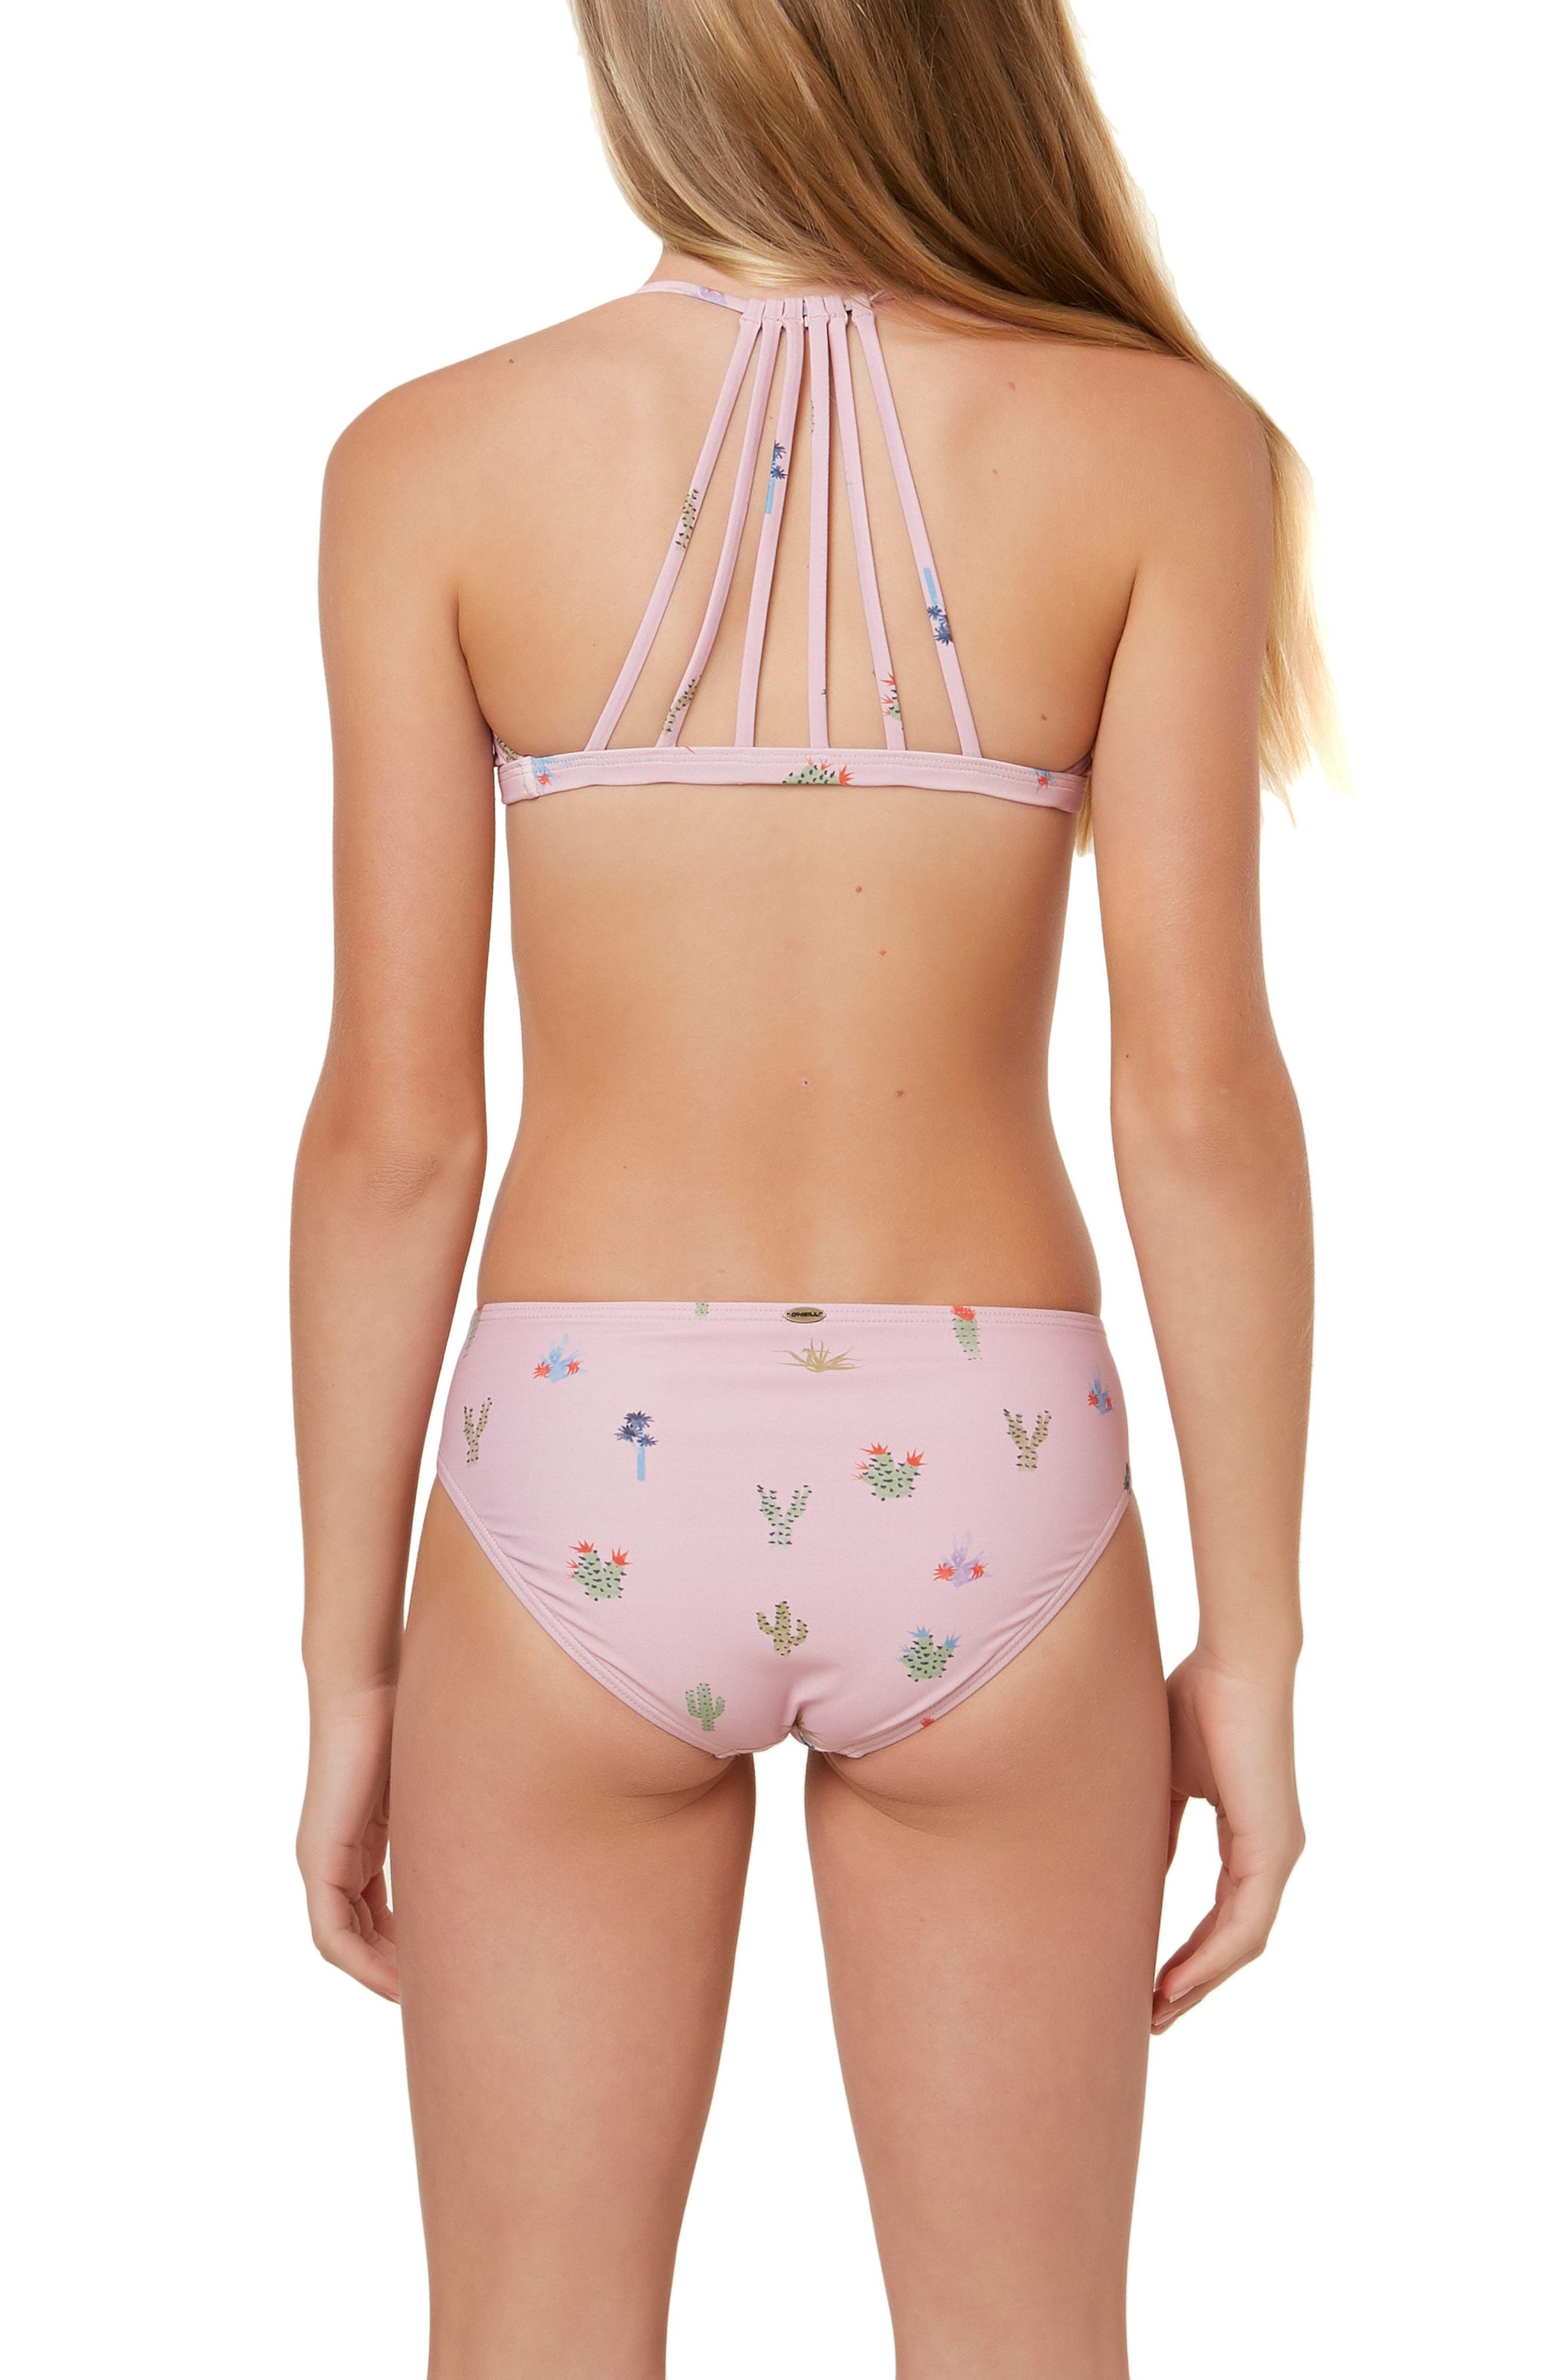 Cacti Two-Piece Swimsuit,                             Alternate thumbnail 3, color,                             CACTI